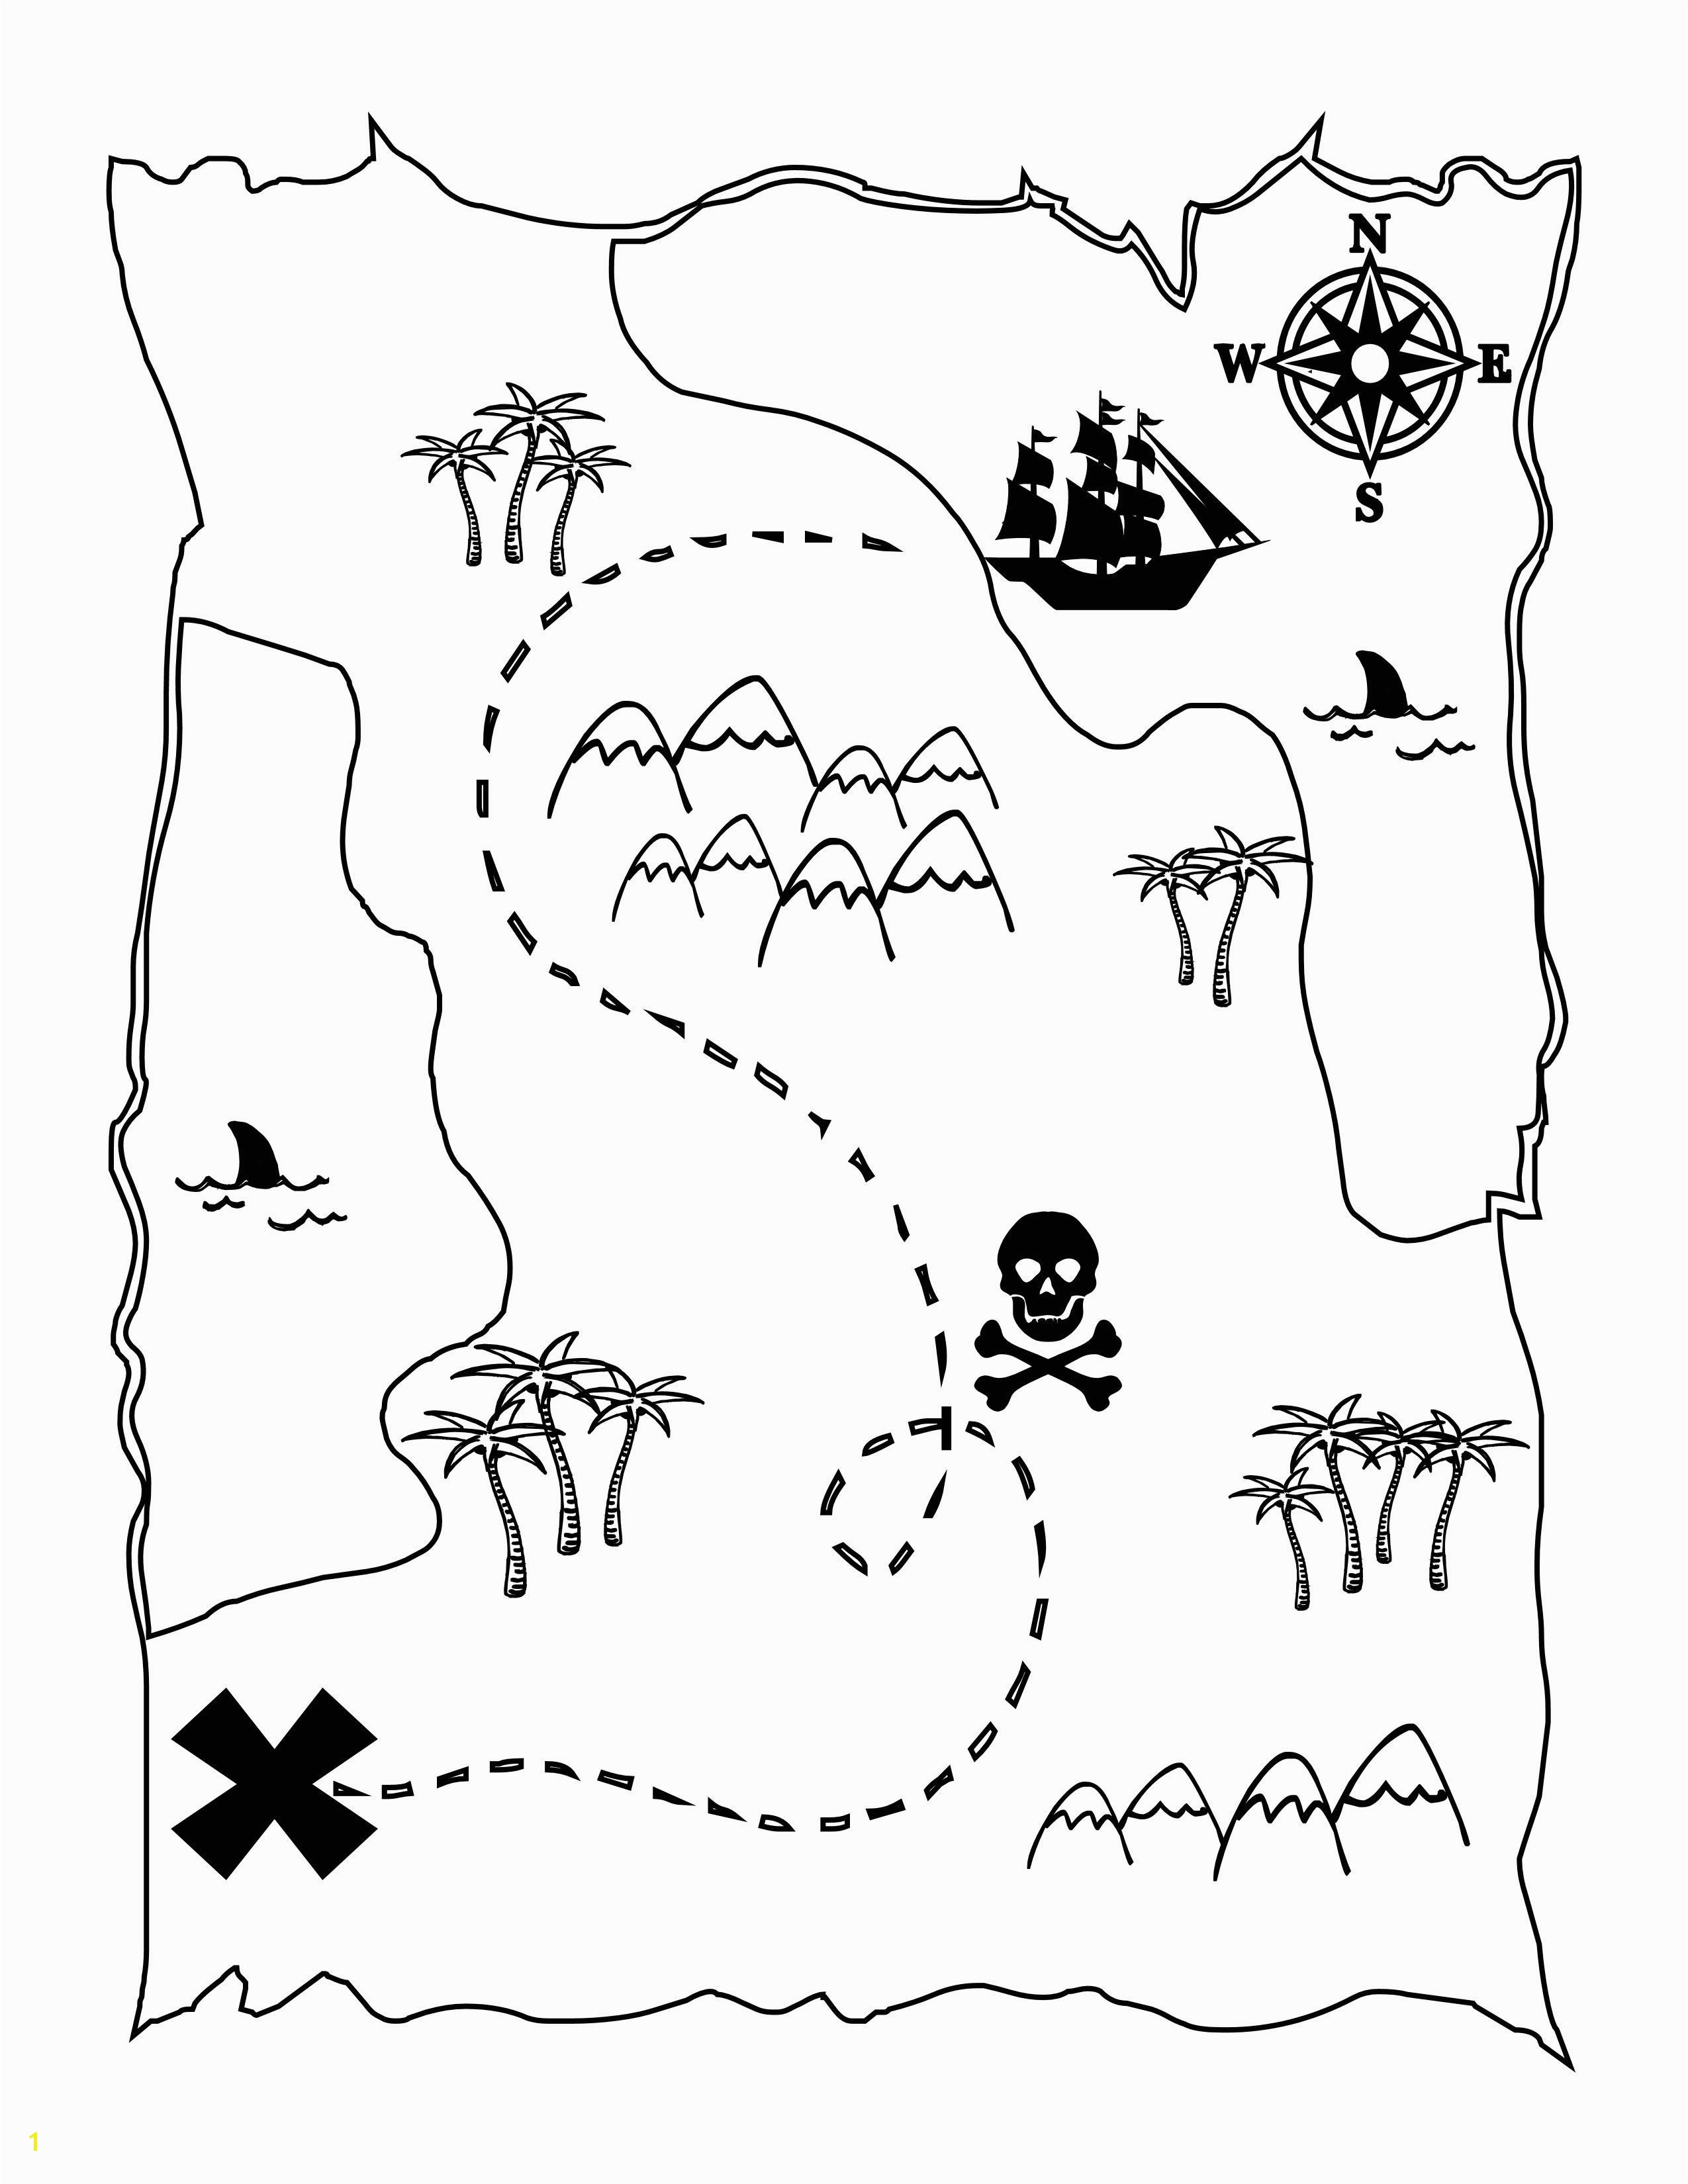 FREE Printable Pirate Map a fun coloring page for the kids lilluna